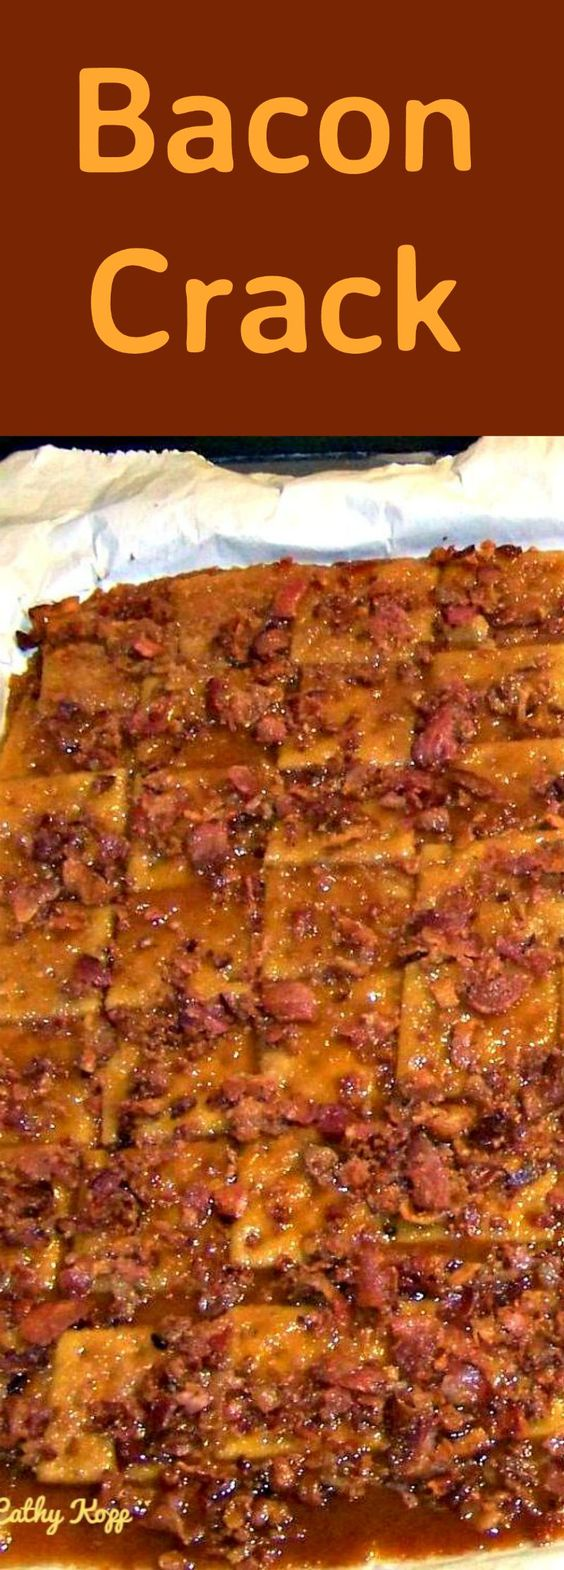 Bacon Crack. A.K.A Bacon Saltine Cracker Candy. If you've never tried this you're missing out!   Lovefoodies.com